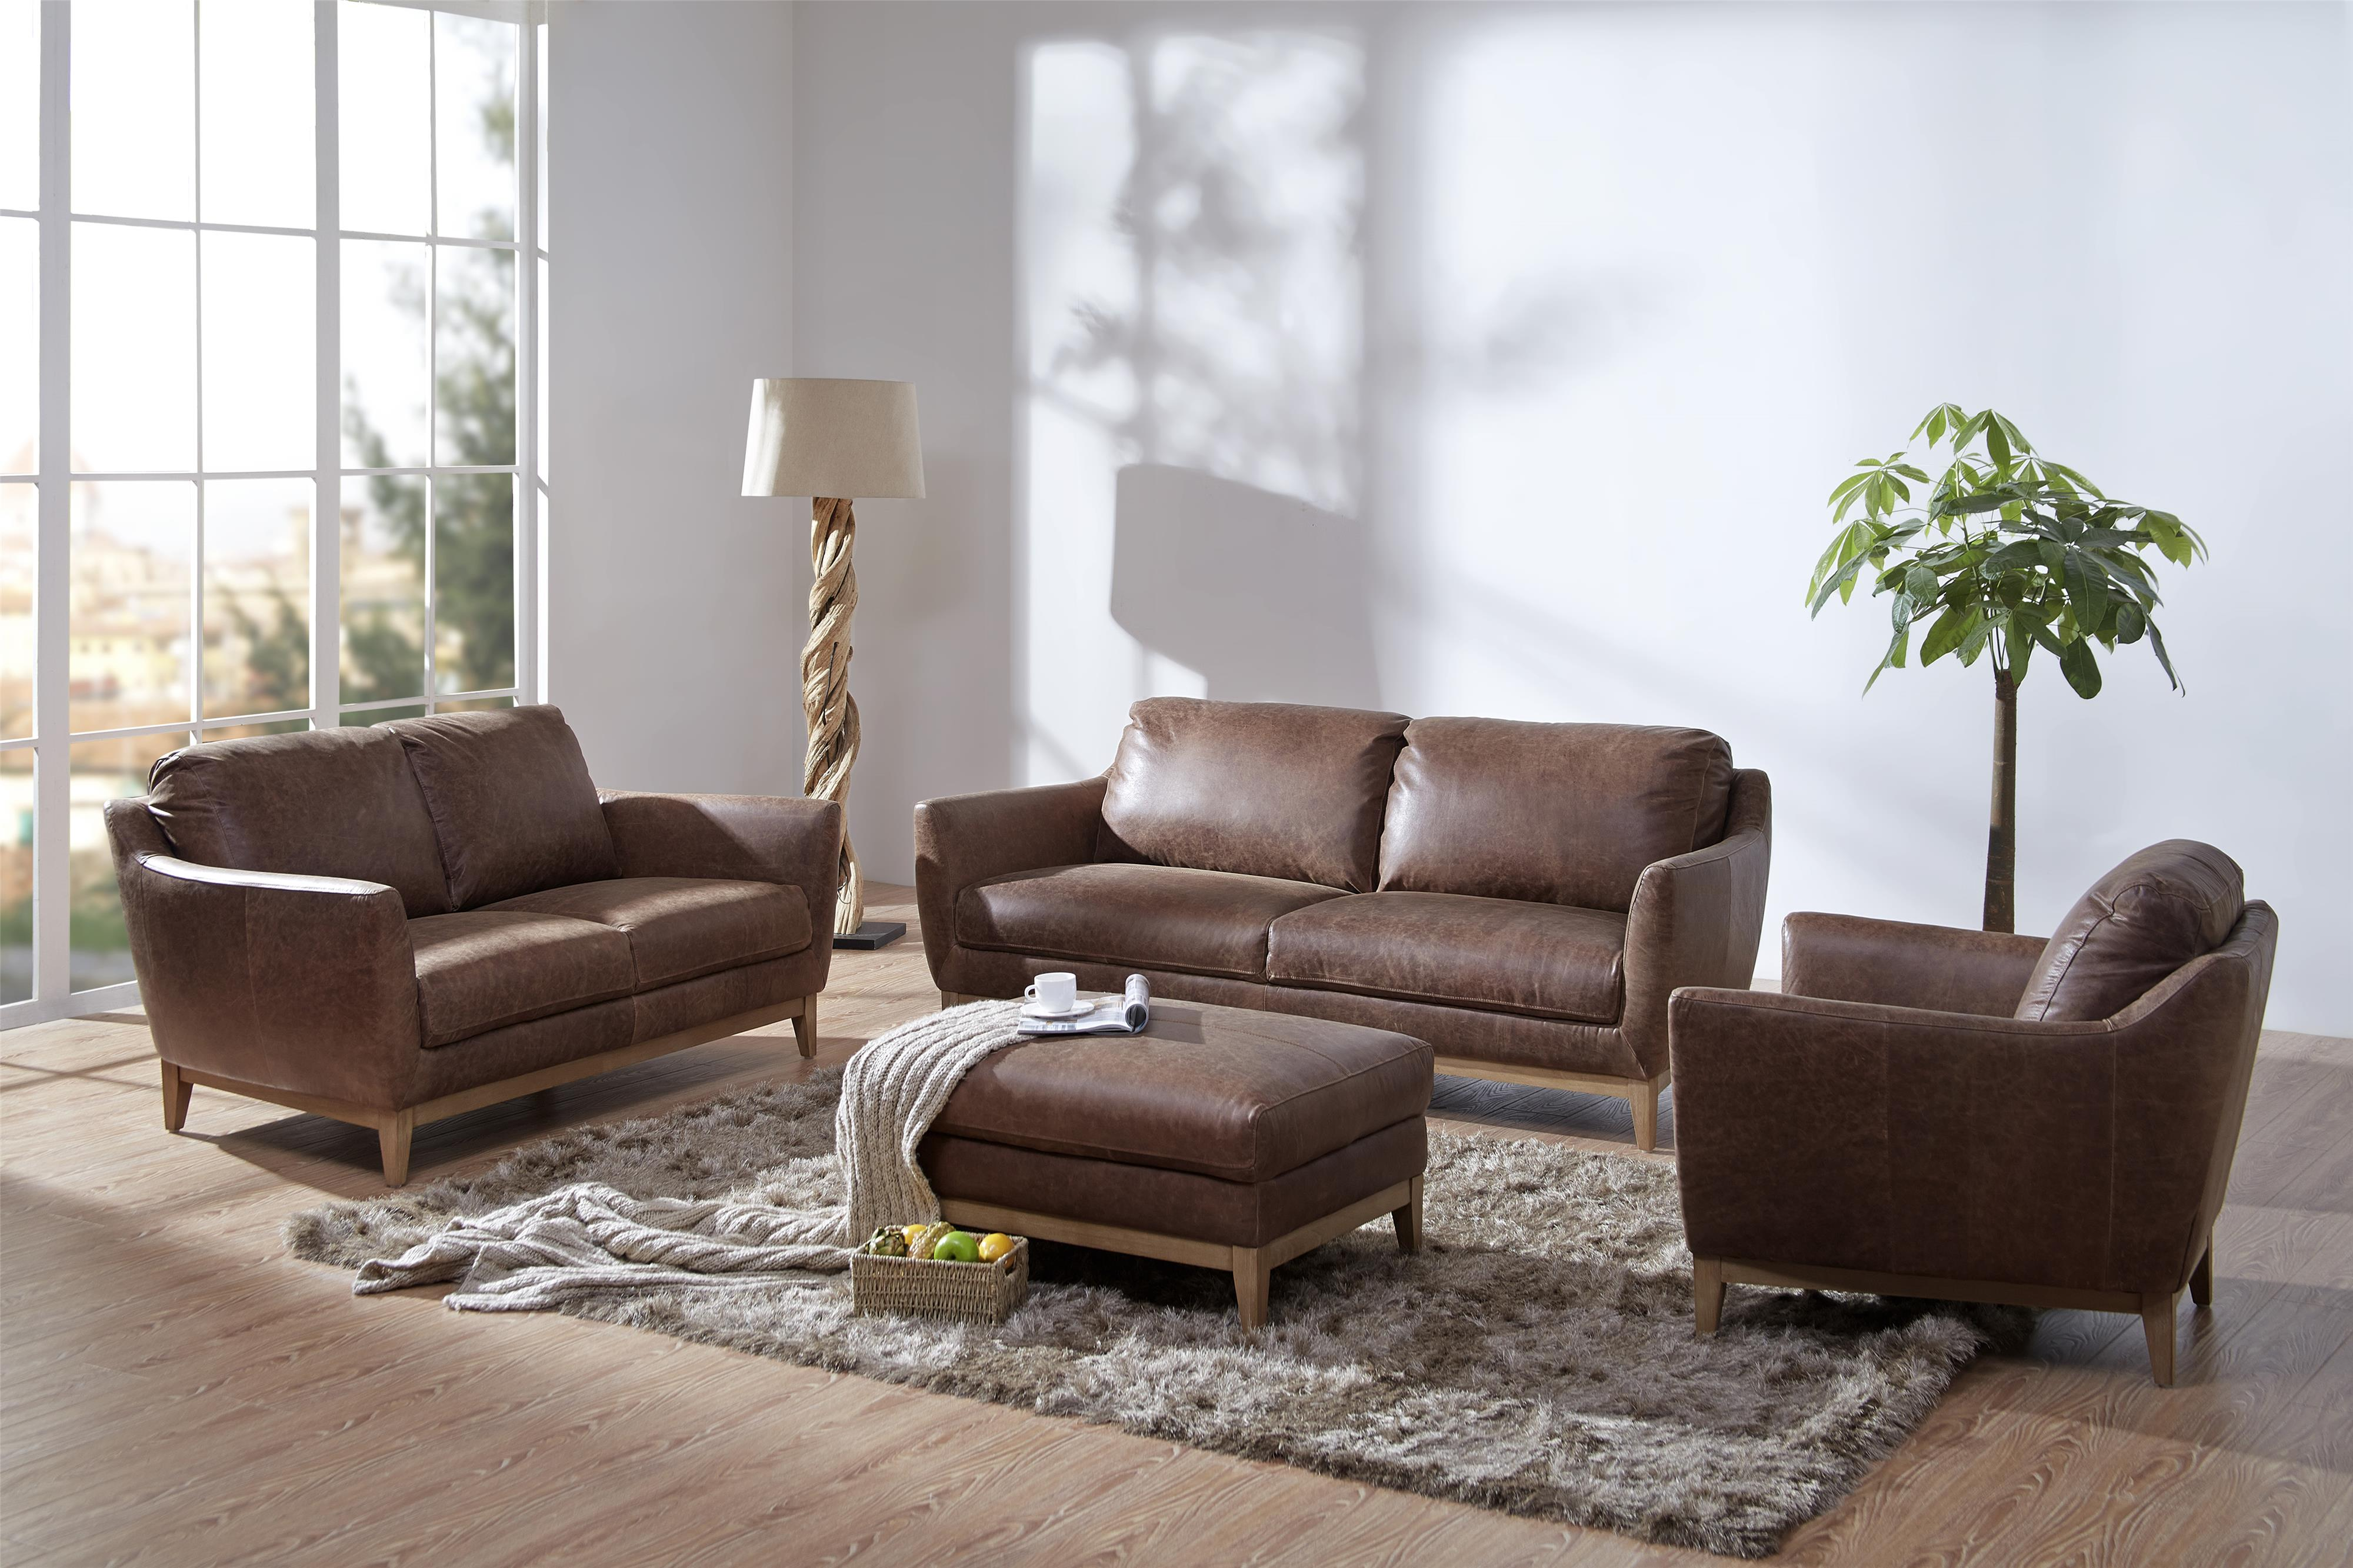 Kuka Home Sofa Review